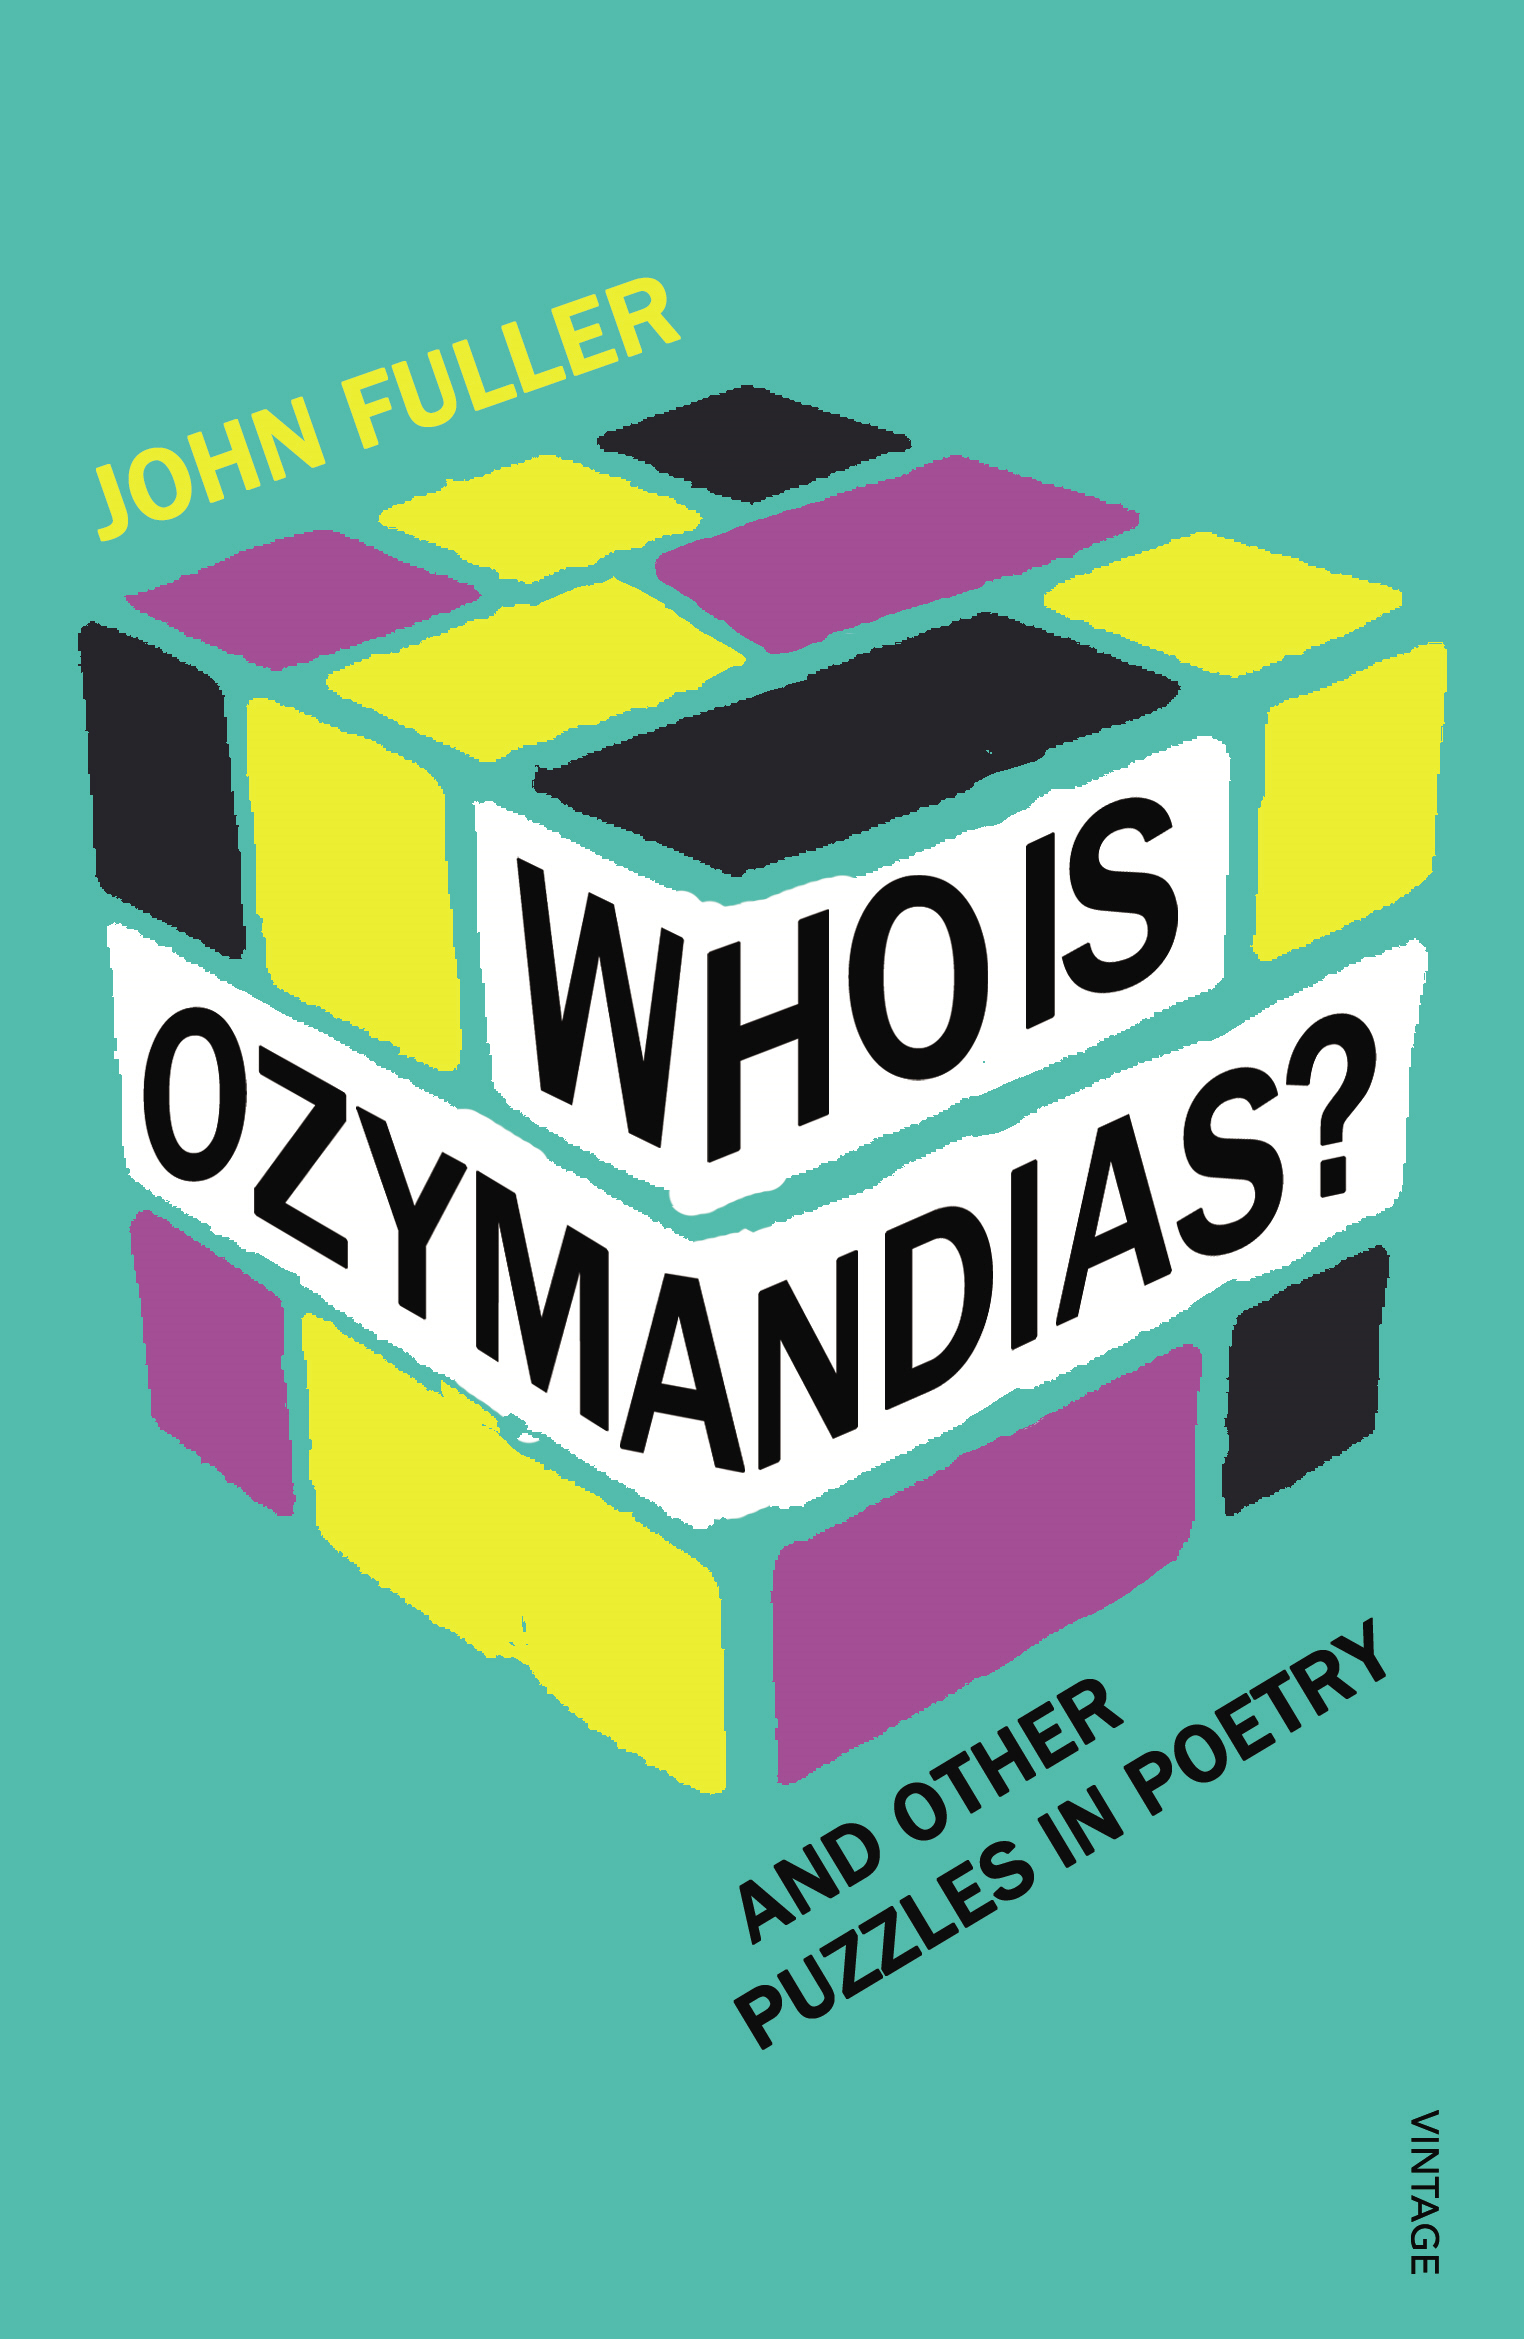 Who Is Ozymandias? By: John Fuller